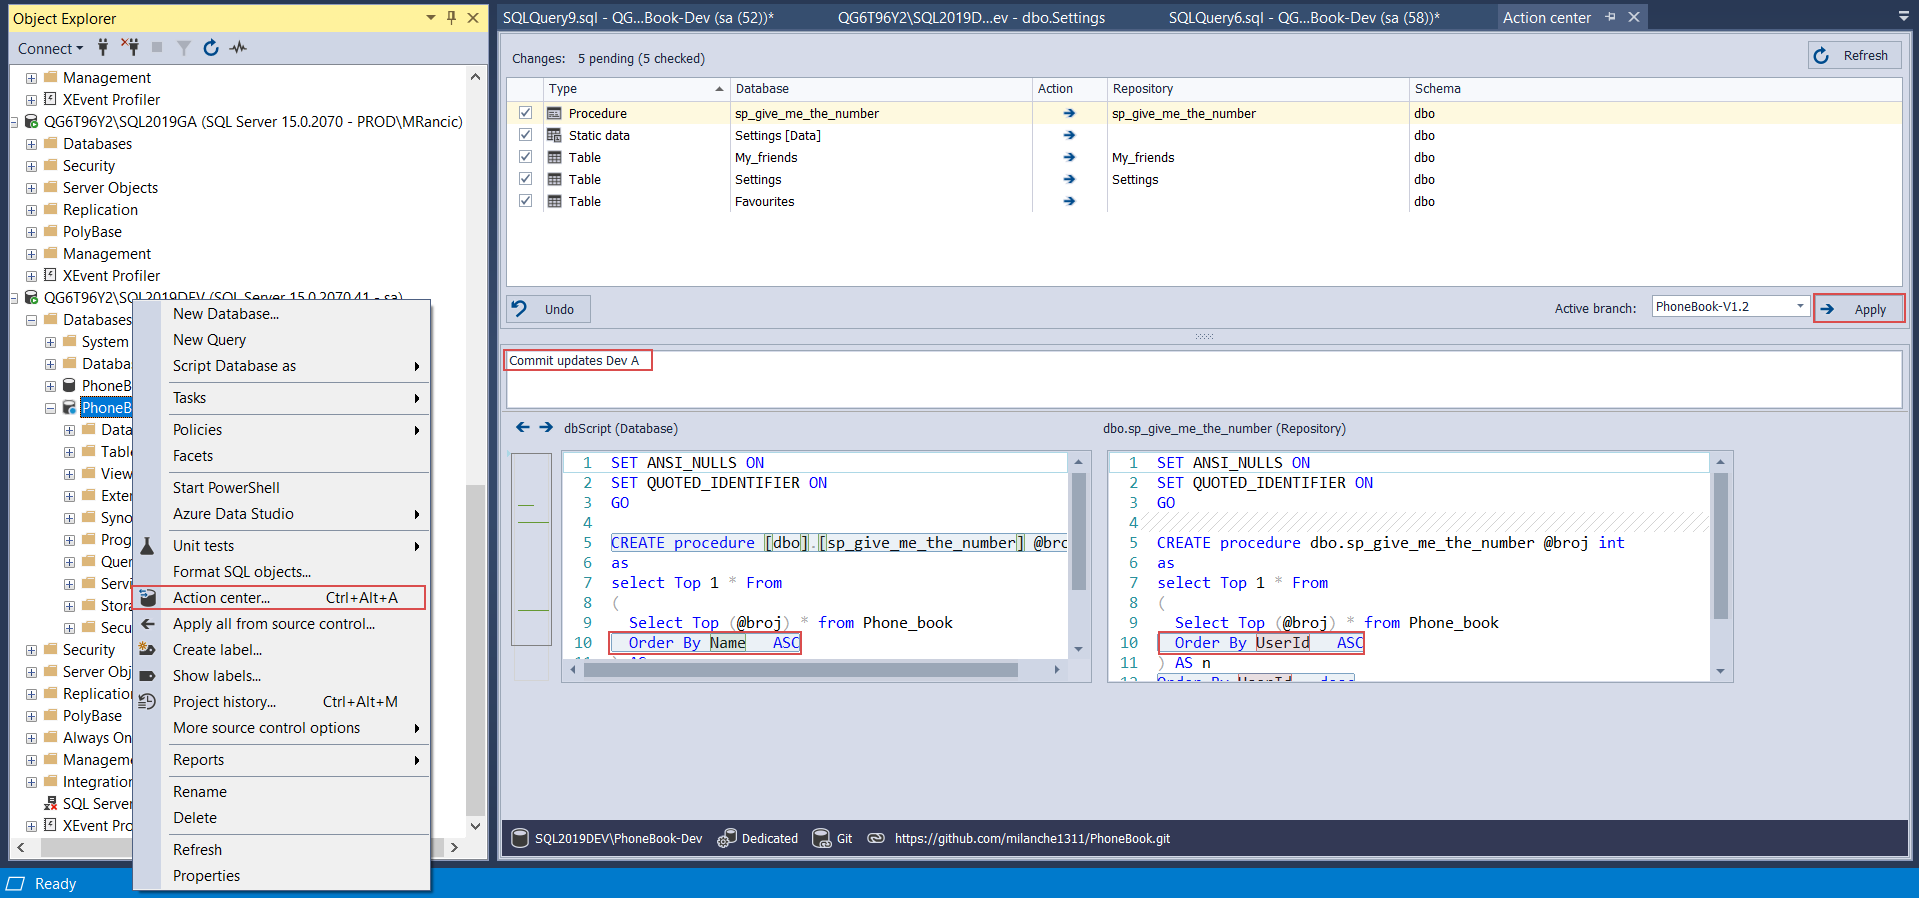 Static data code commmit for new database lifecycle iteration